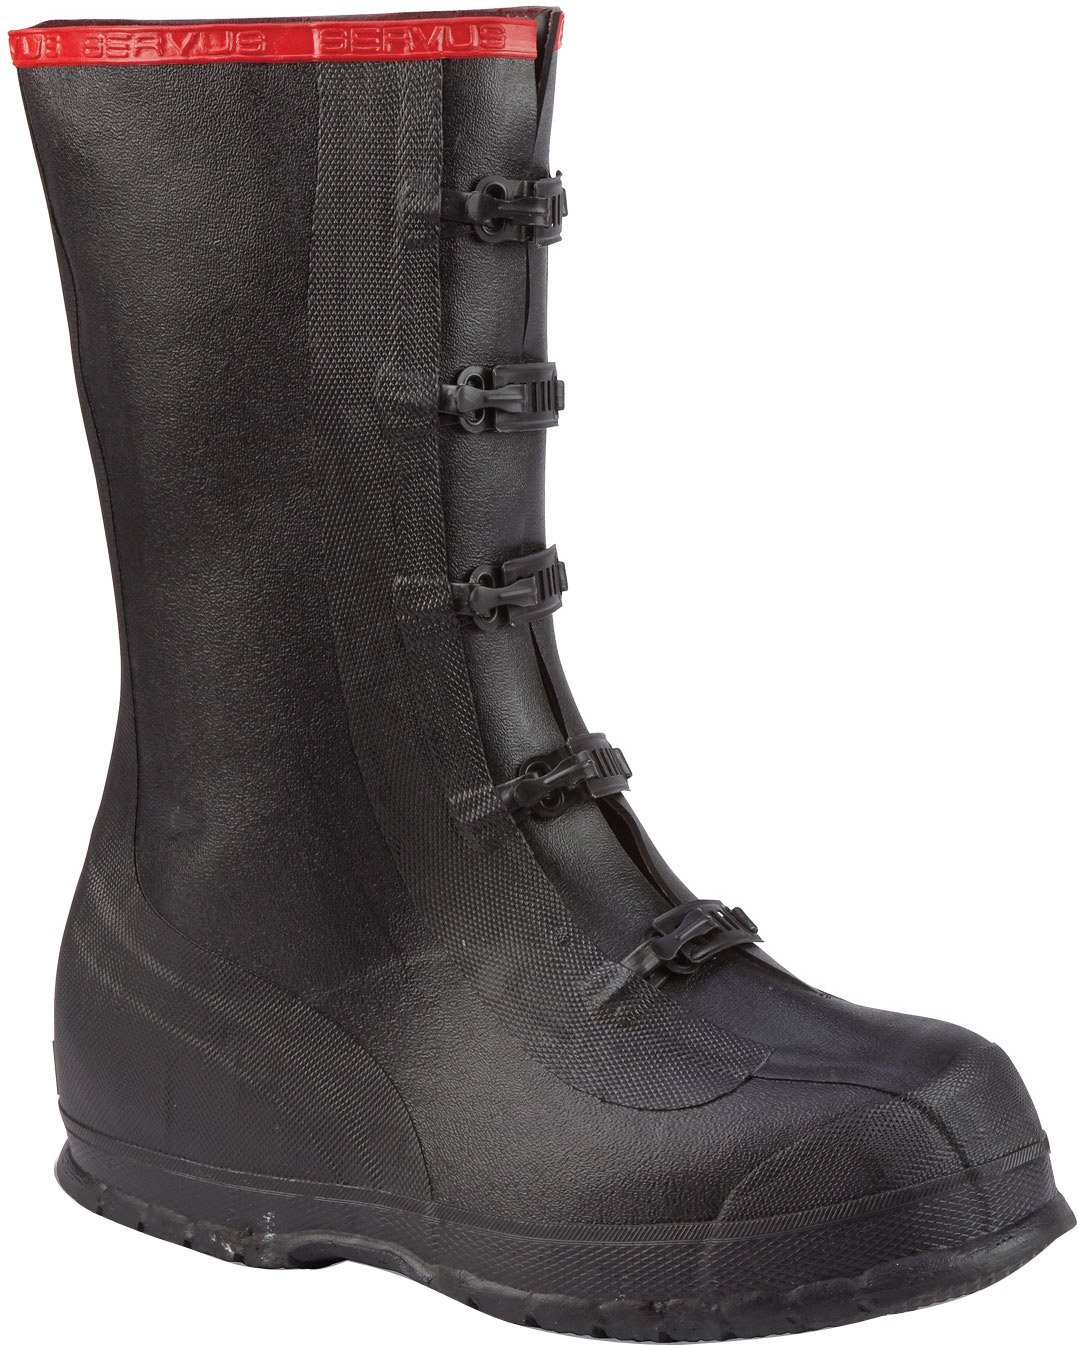 Ranger 15'' Rubber Supersized Men's Overboots, Black (T369) by Honeywell